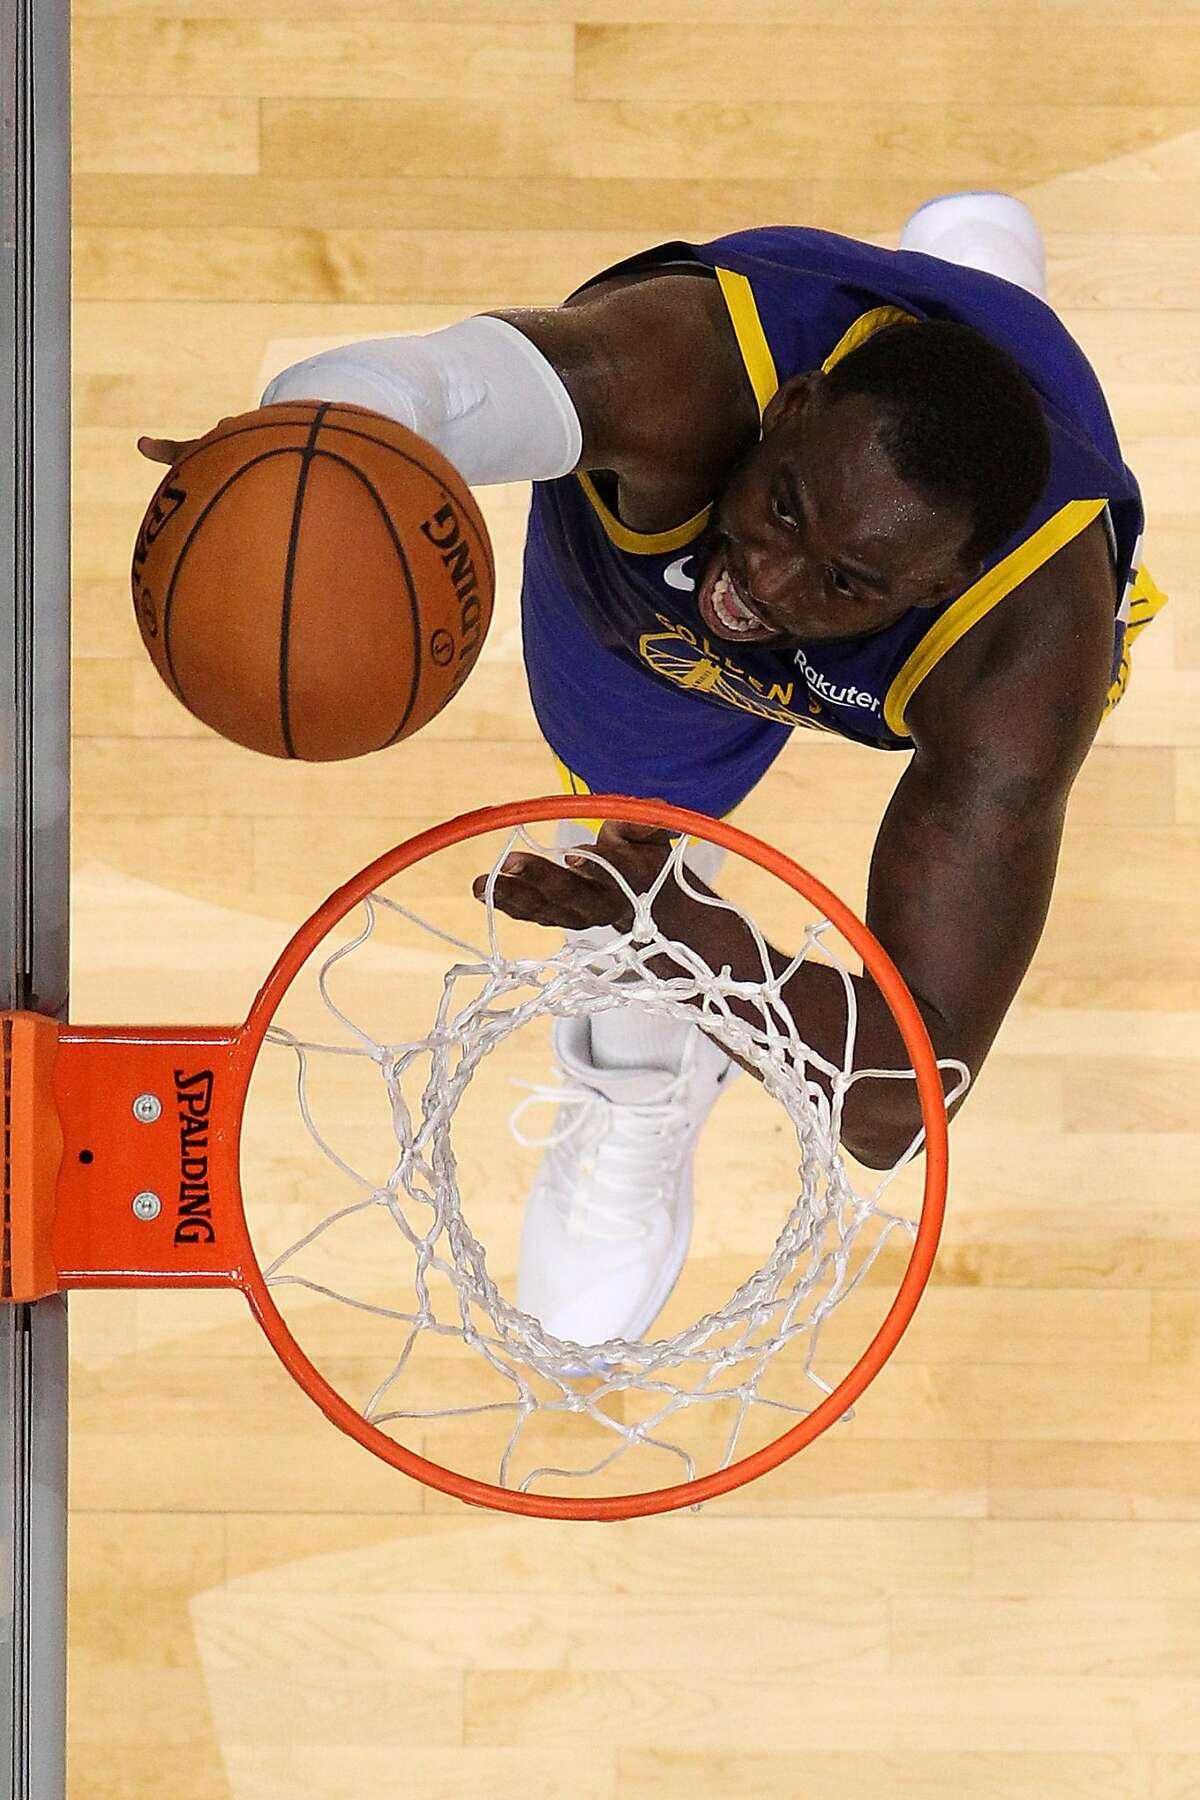 NEW ORLEANS, LOUISIANA - OCTOBER 28: Draymond Green #23 of the Golden State Warriors makes a layup against the New Orleans Pelicans at Smoothie King Center on October 28, 2019 in New Orleans, Louisiana. NOTE TO USER: User expressly acknowledges and agrees that, by downloading and/or using this photograph, user is consenting to the terms and conditions of the Getty Images License Agreement (Photo by Chris Graythen/Getty Images)